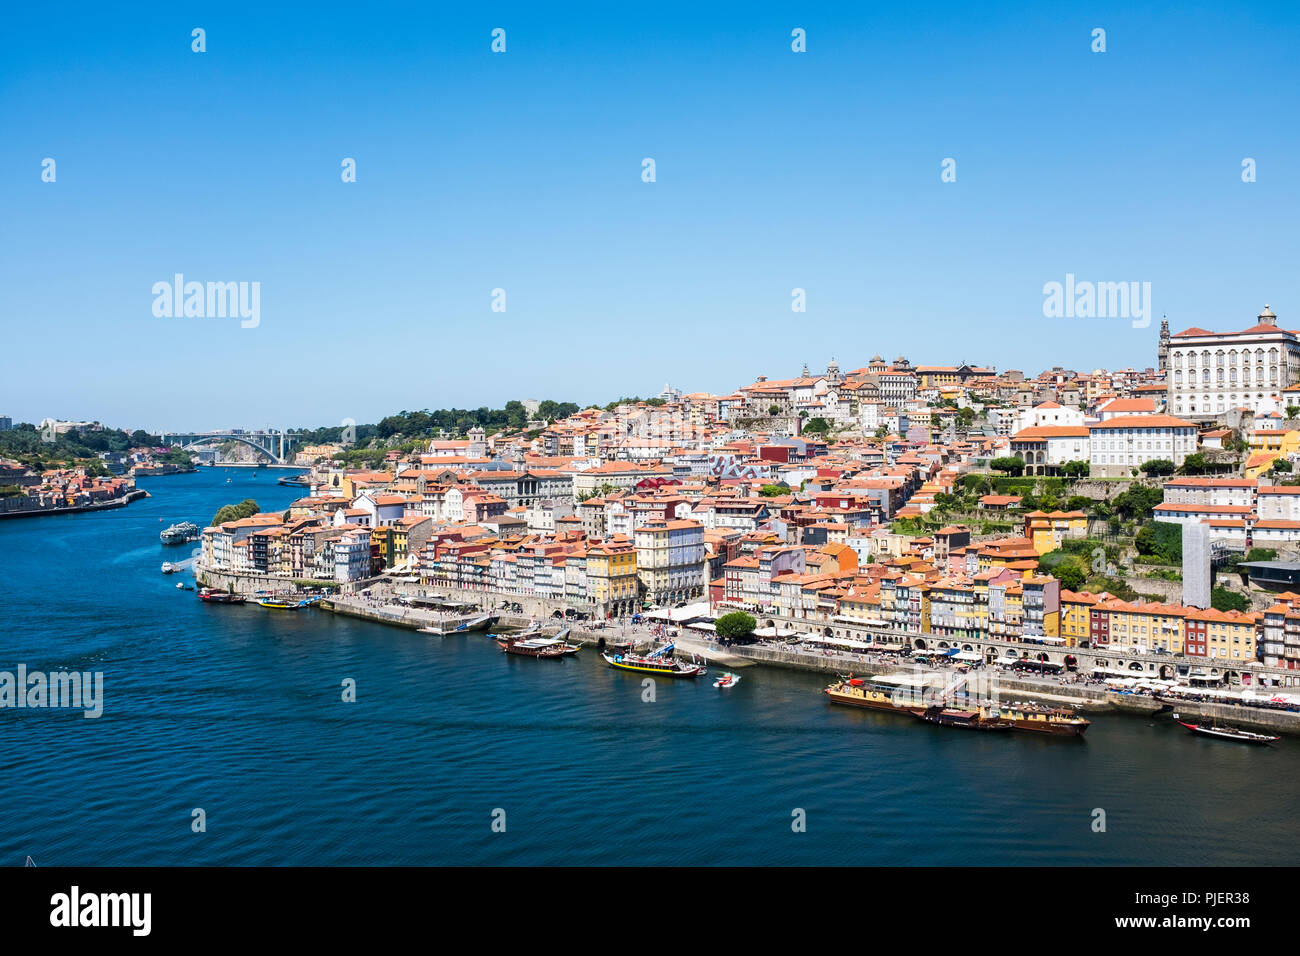 View of The Ribiera, Porto from Vila Nova de Gaia, Portugal. Stock Photo